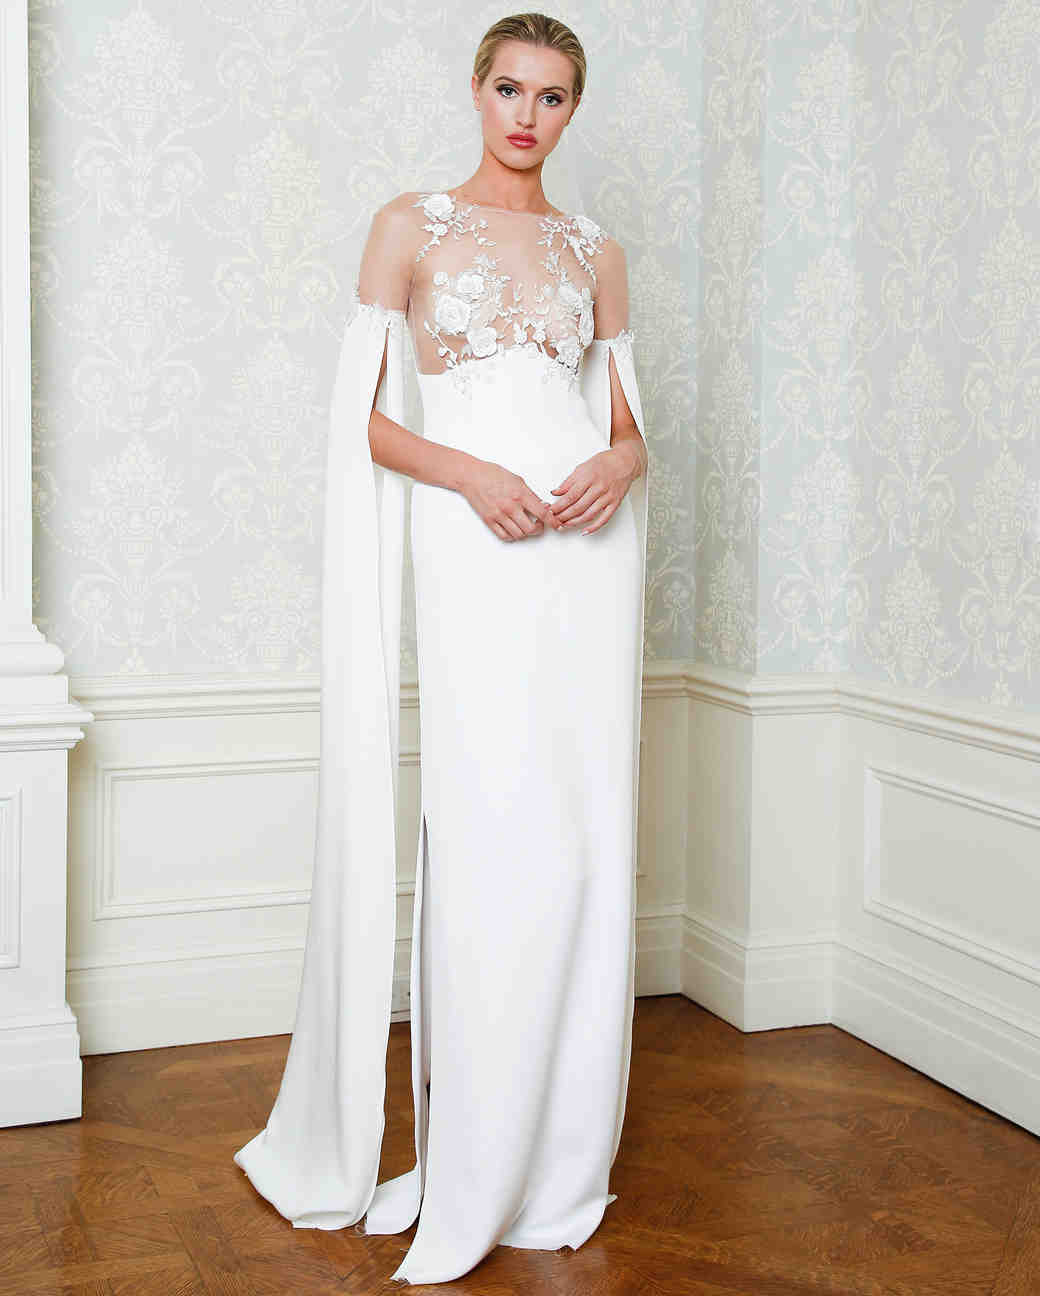 Cristina Ottaviano wedding dress spring 2019 sheer lace top sheath with skirt slit